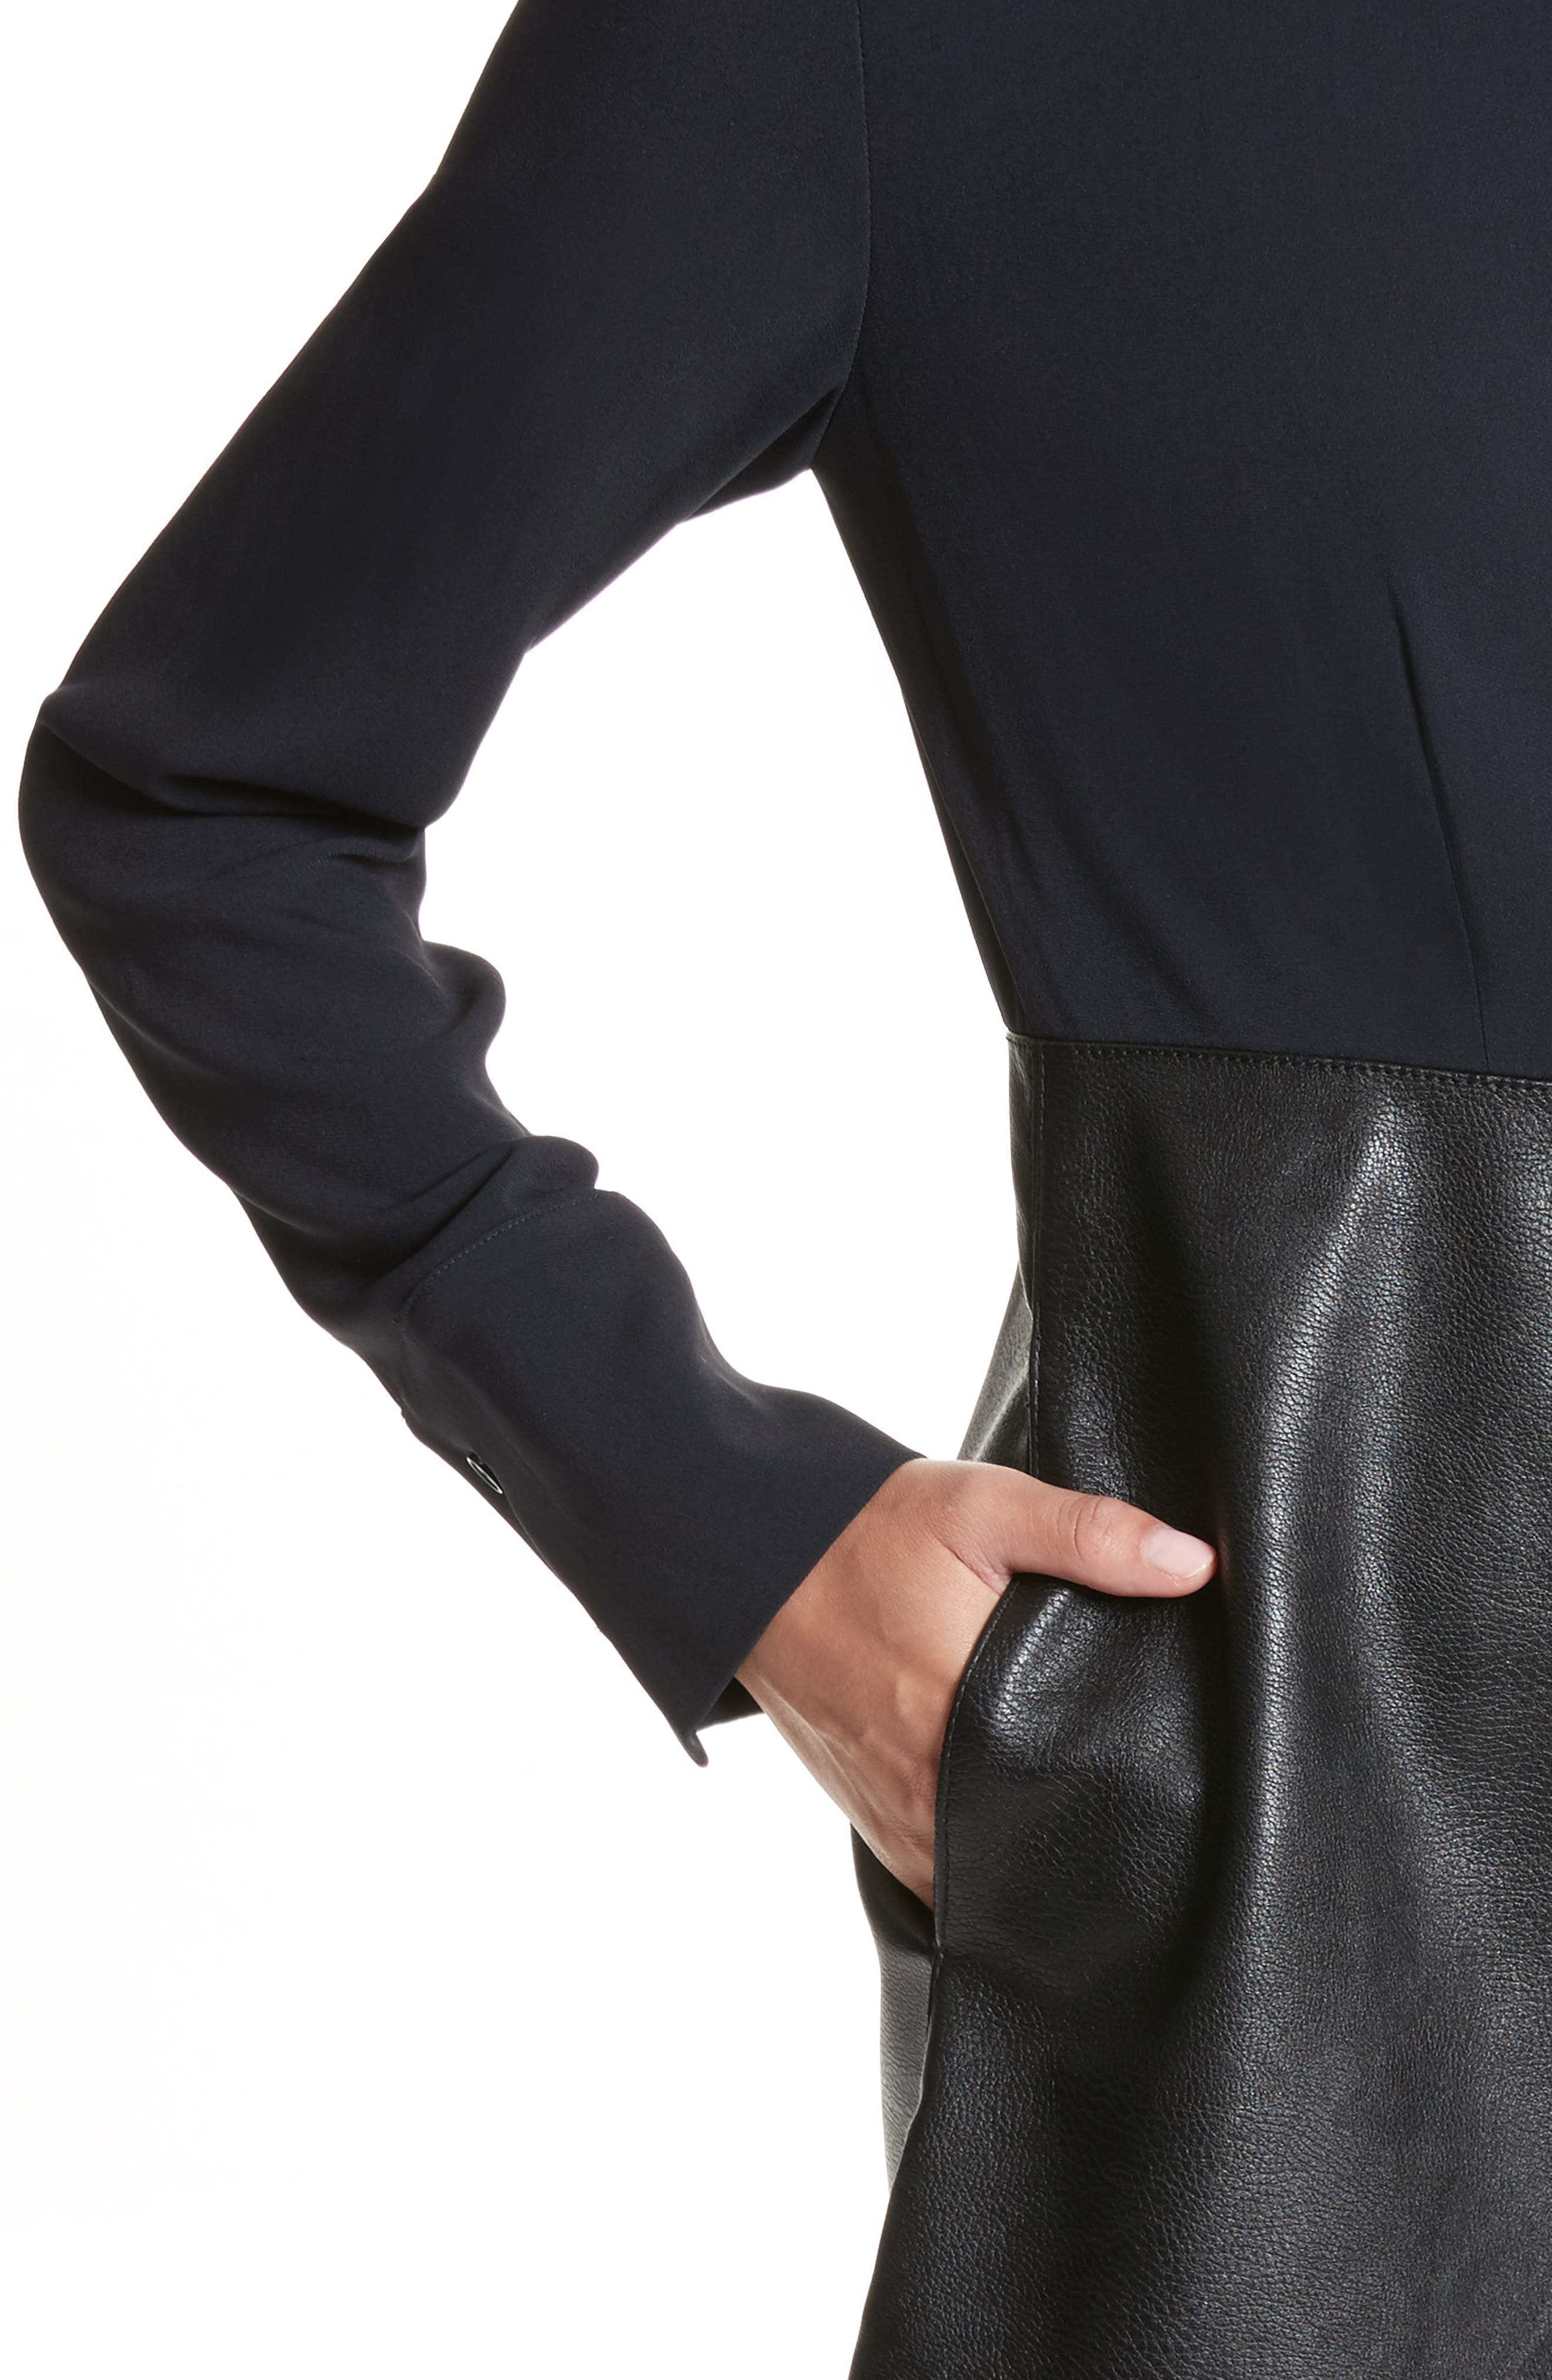 Alter Leather & Stretch Cady Dress,                             Alternate thumbnail 4, color,                             001